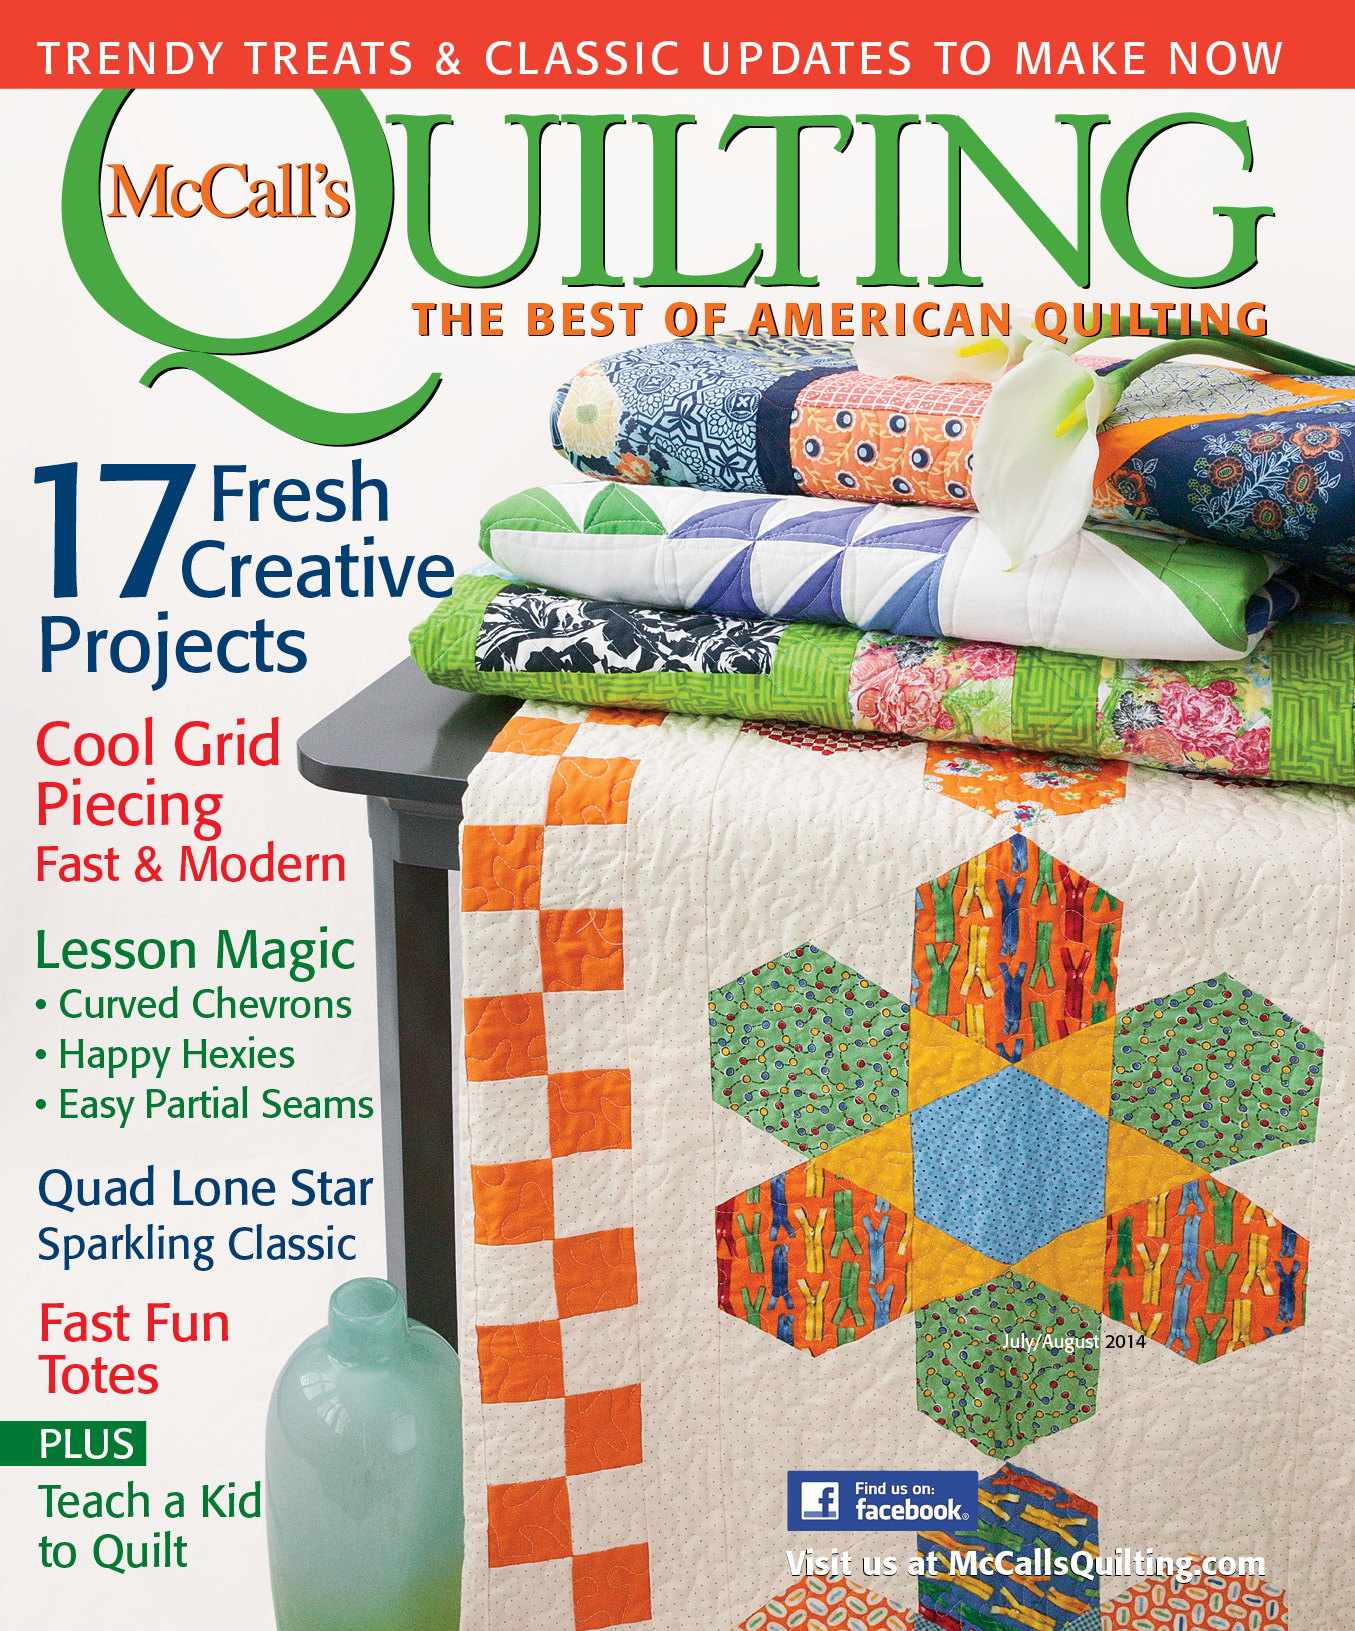 Bird Watching in McCALL'S QUILTING (July/August 2014) & Giveaway!